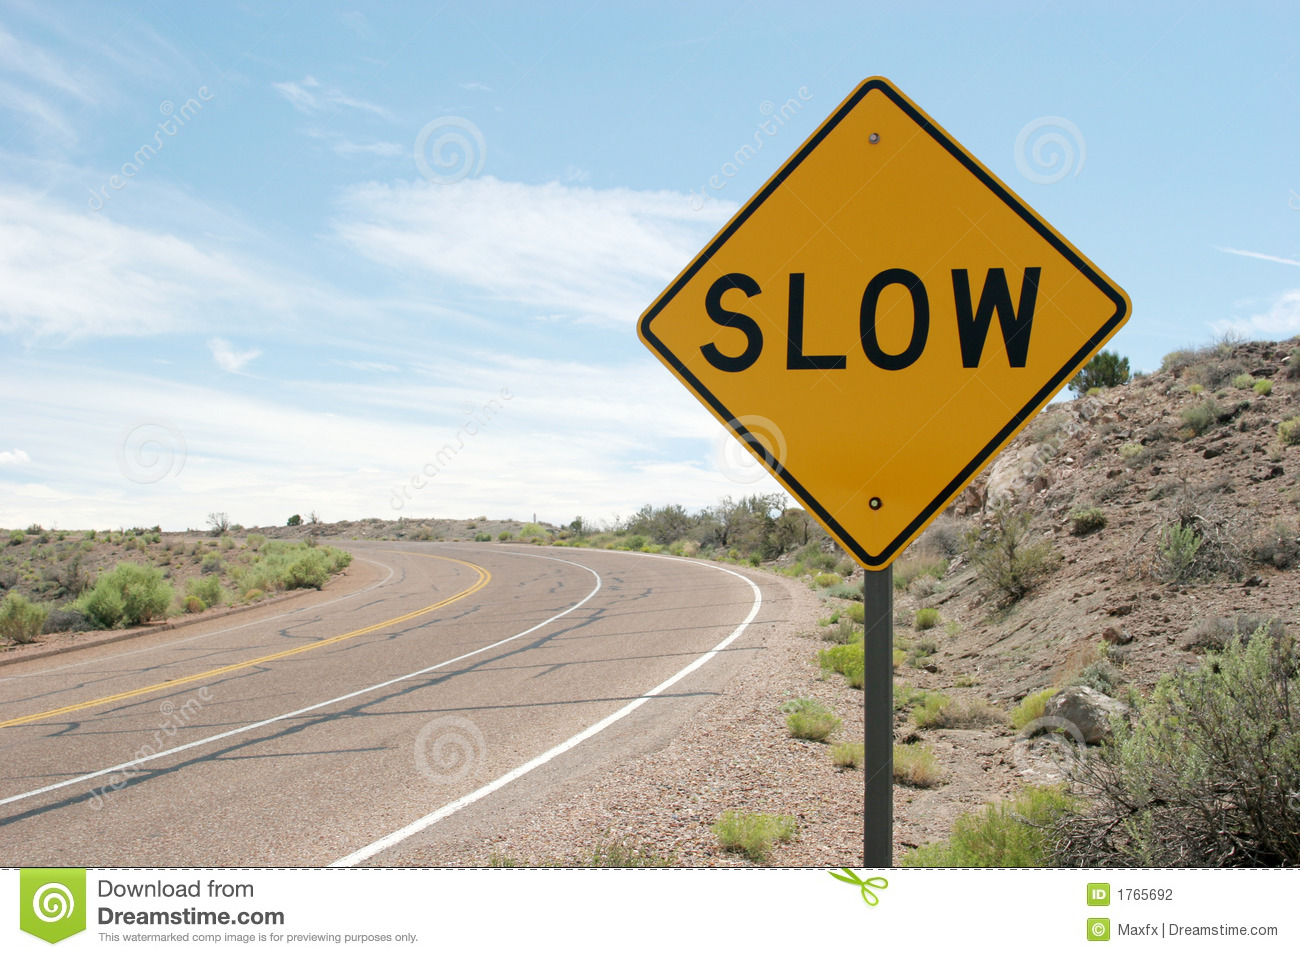 Car In Desert Wallpaper Slow Traffic Sign Stock Photography Image 1765692